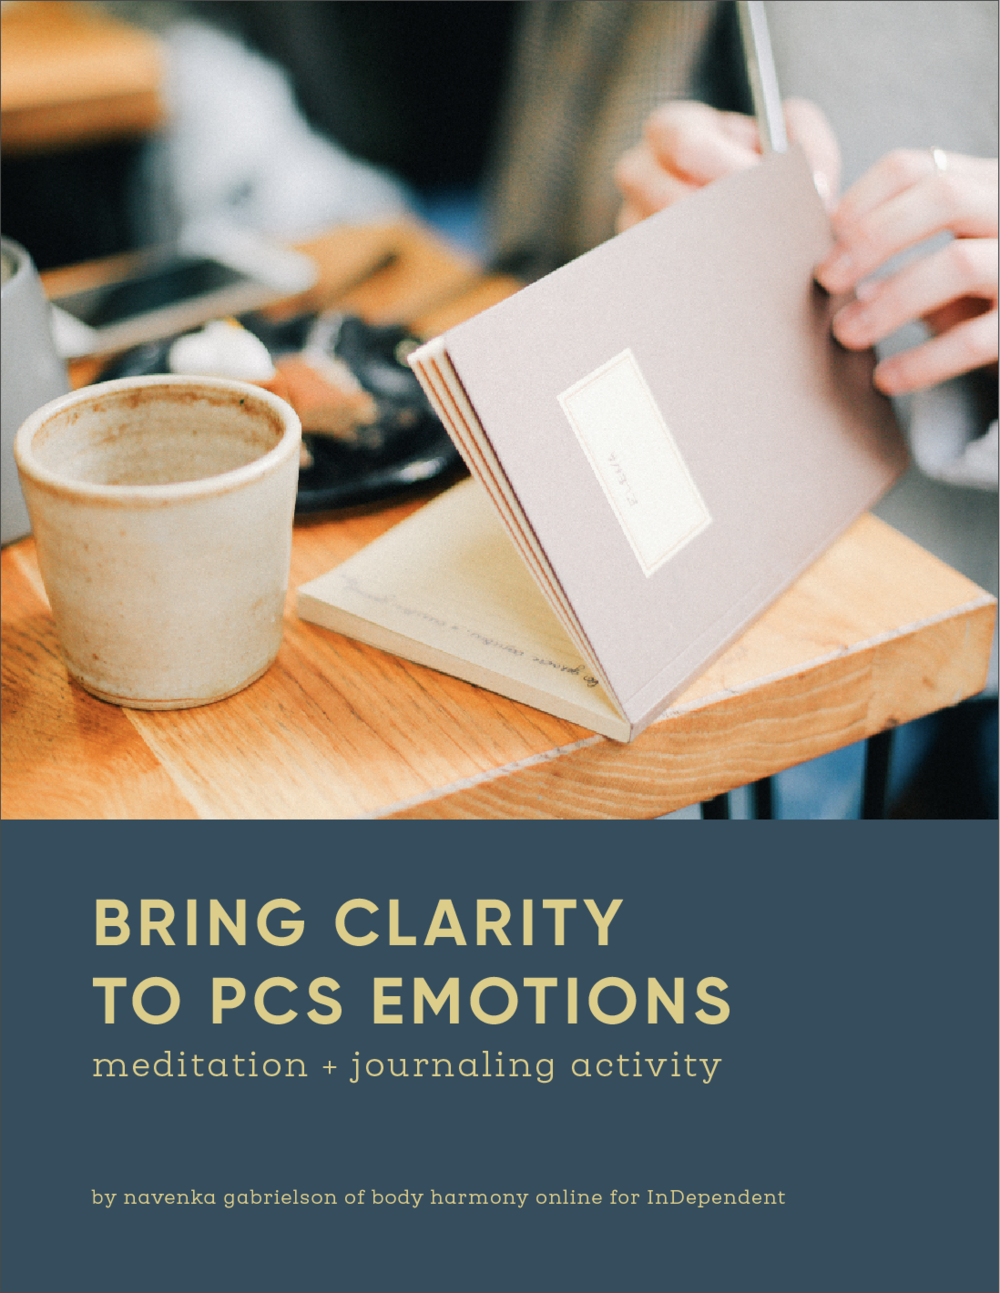 Bring Clarity to PCS Emotions workbook - by Navenka Gabrielson of Body Harmony Online